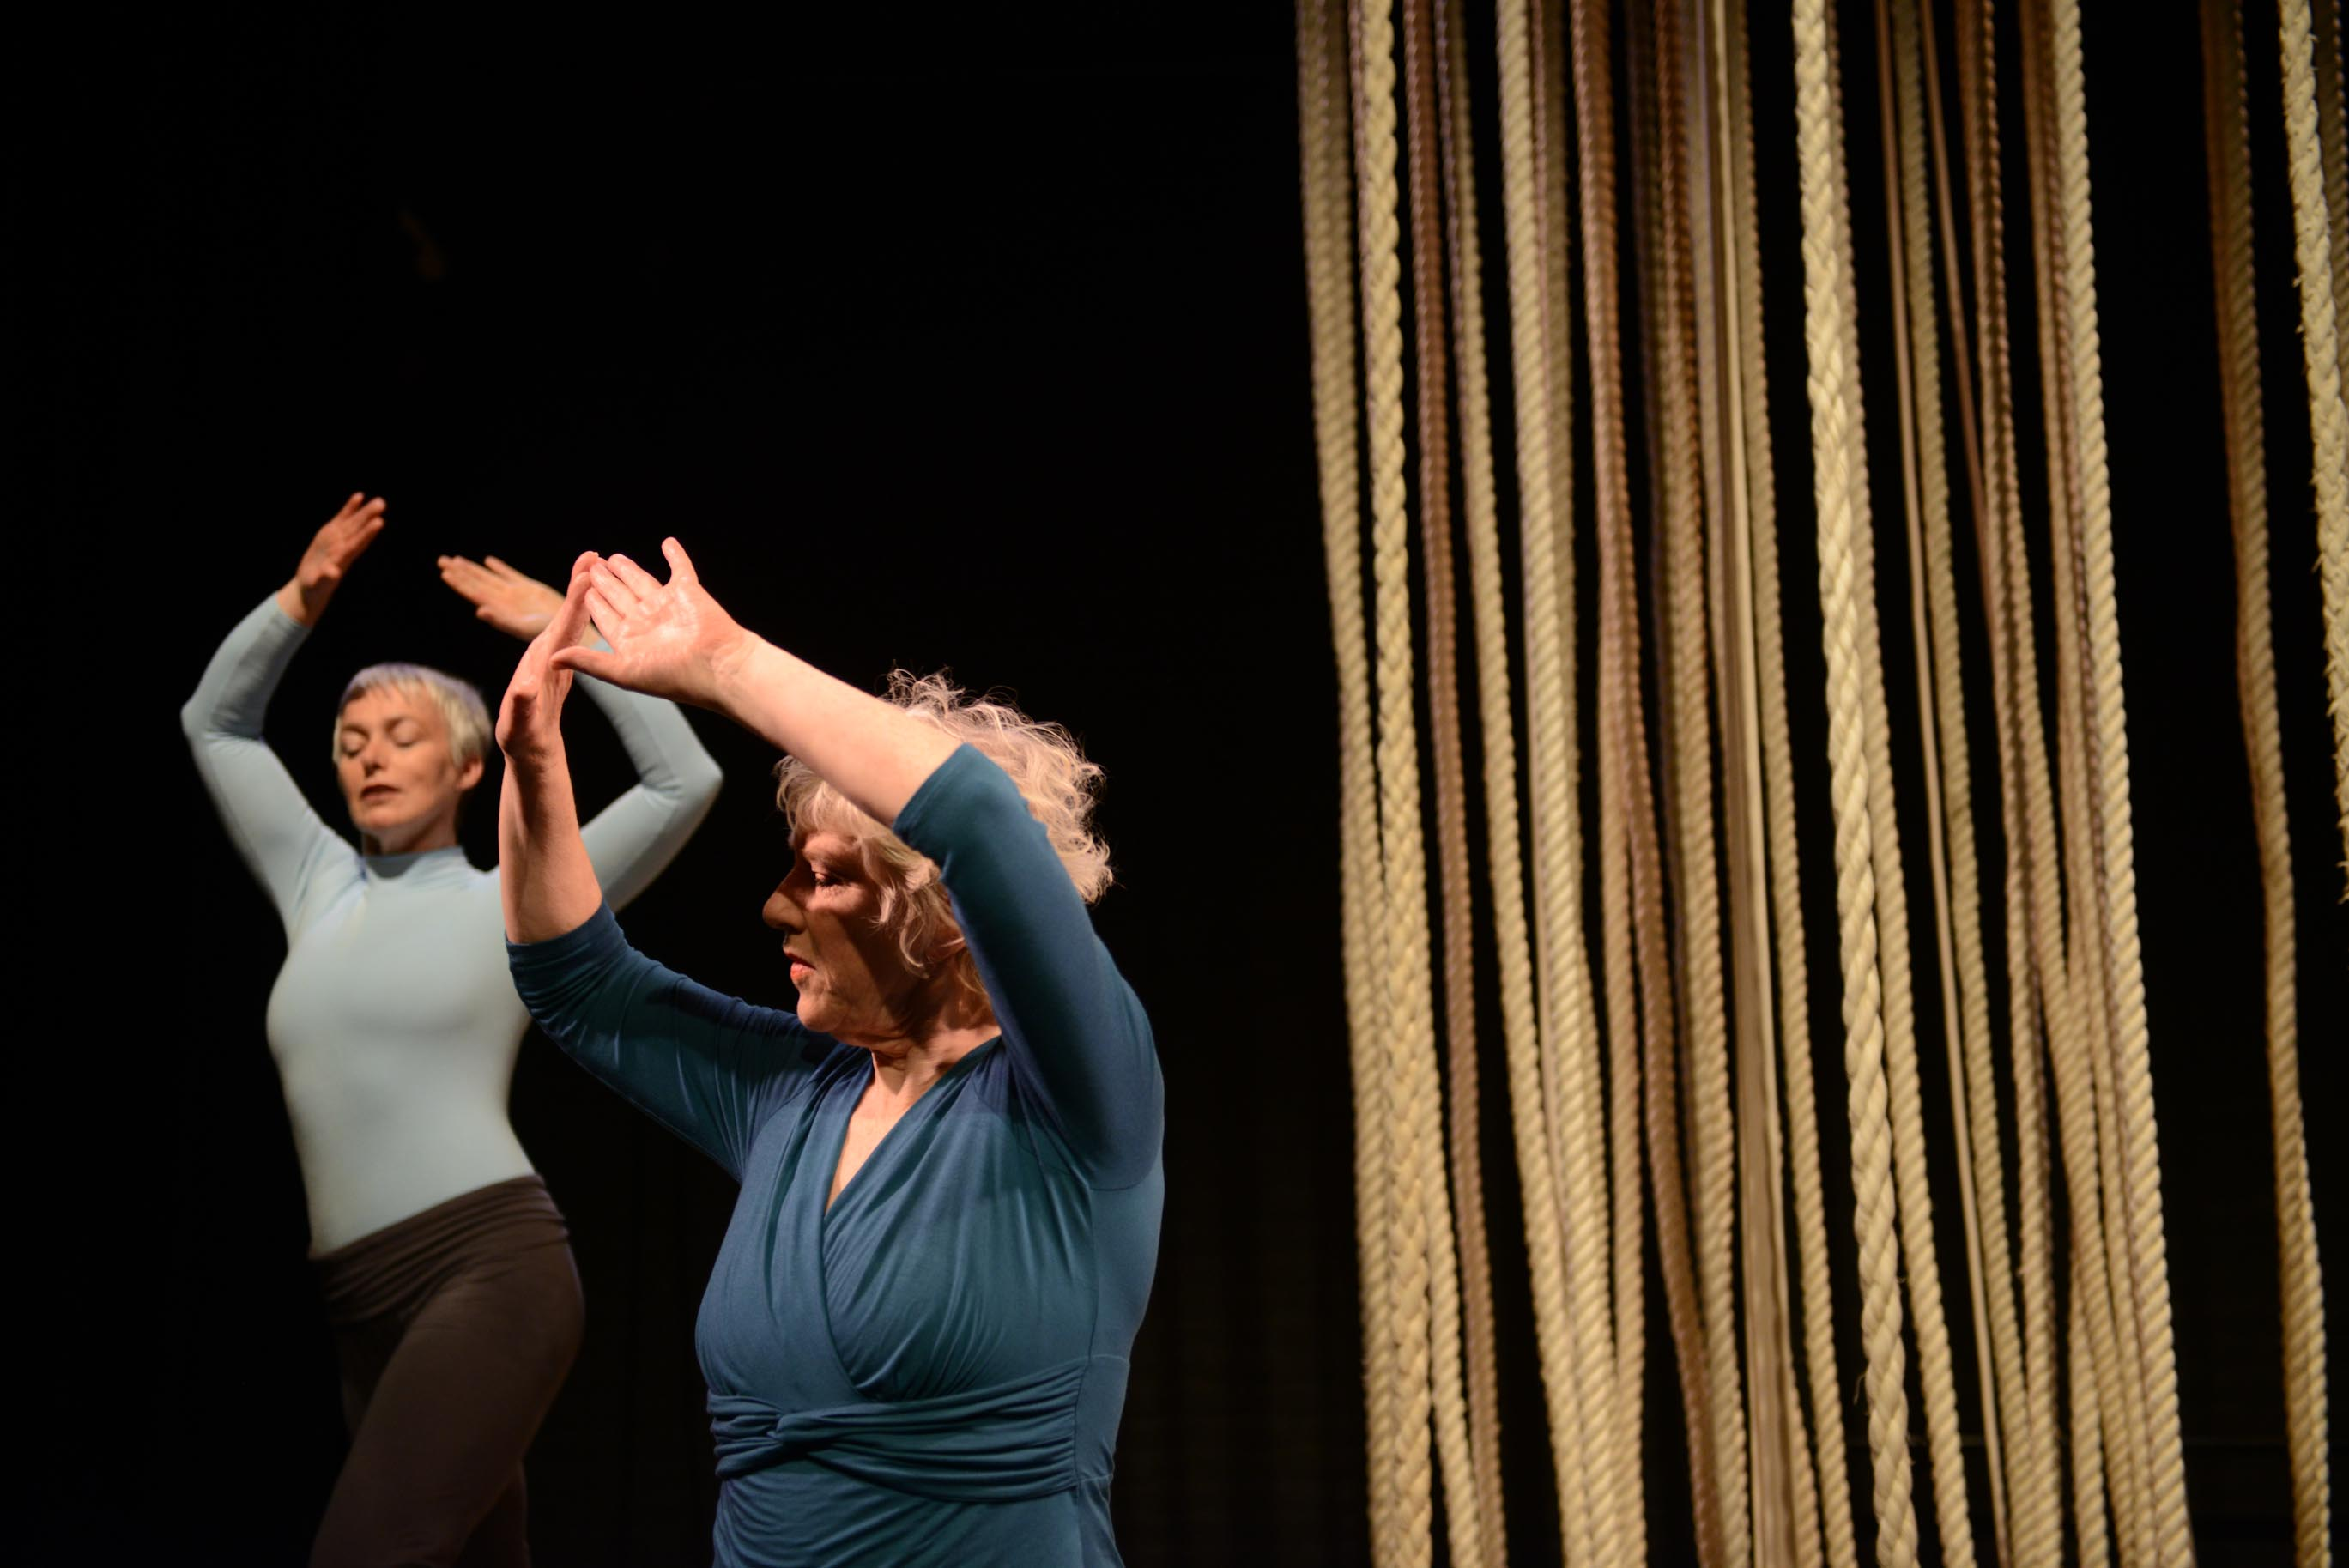 Two female dancers raise their arms in the air in a dark room filled with ropes.